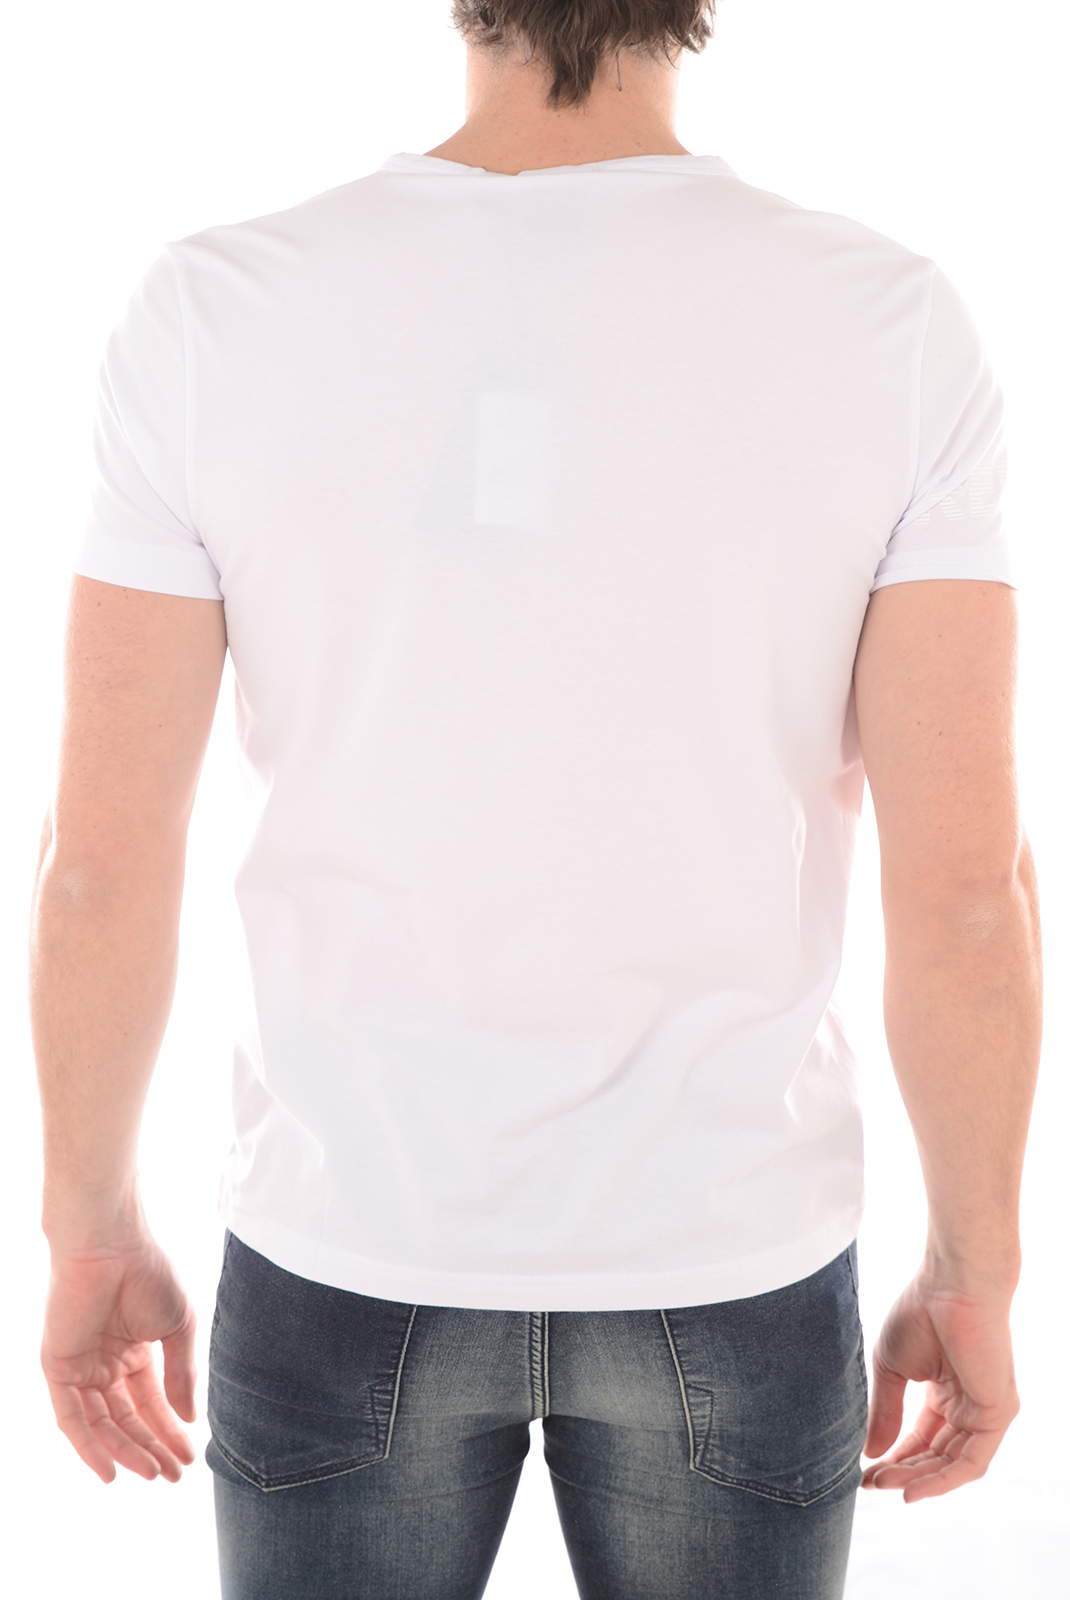 Tee-shirts manches courtes  Redskins ARES WARNER H16 WHITE